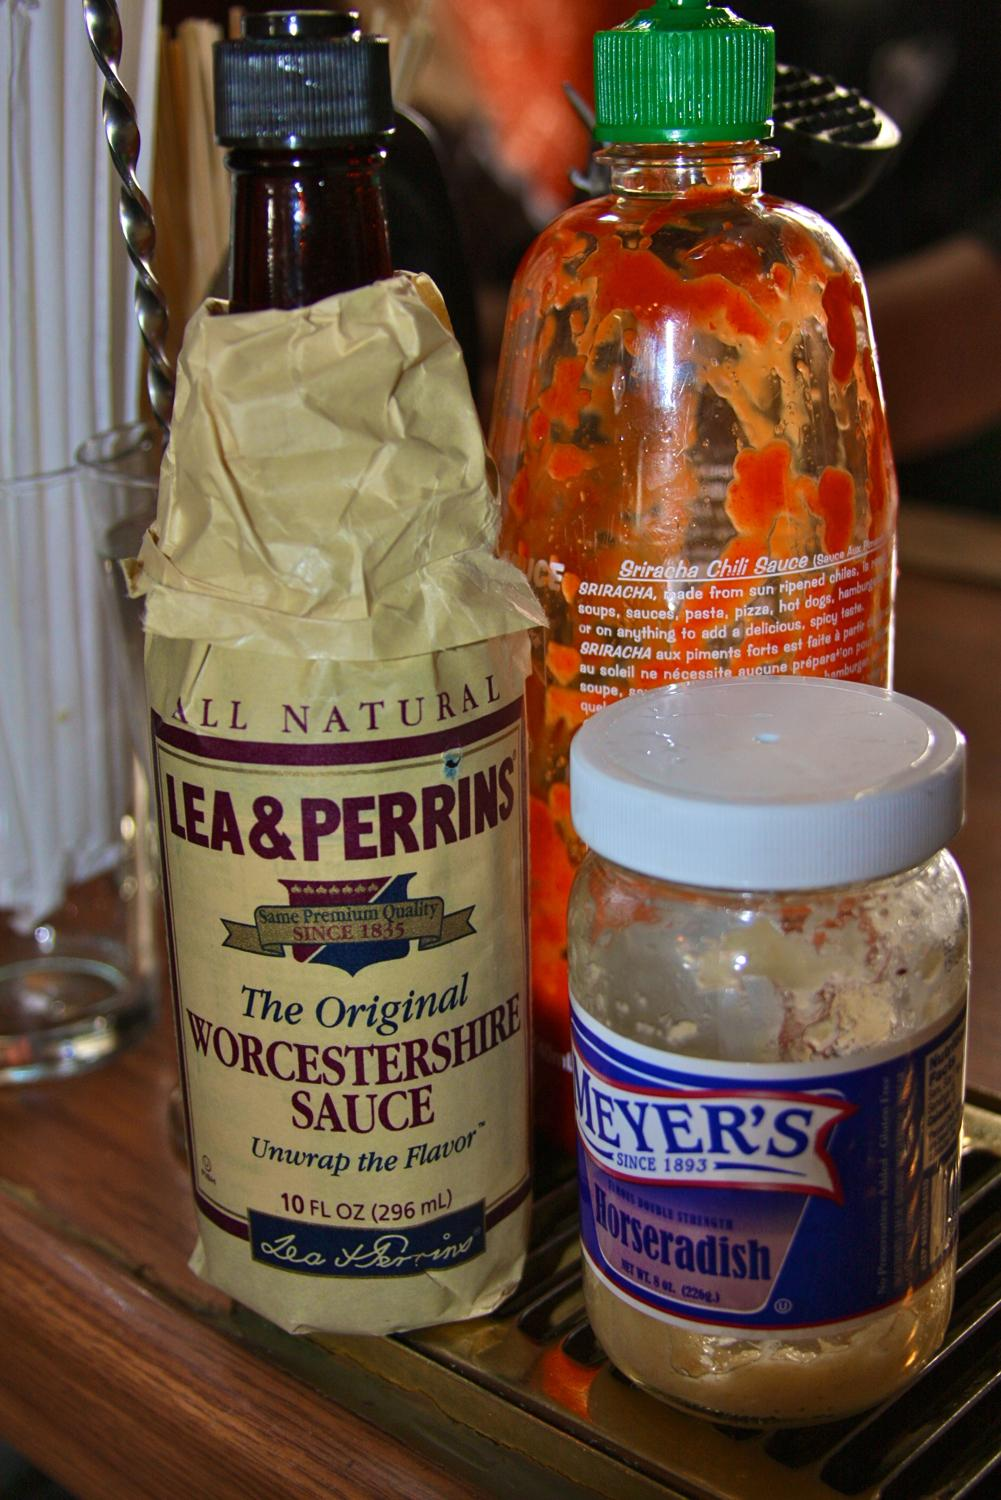 The ingredients used along with the Bloody Mary Mix in Brandon's infamous Bloody Marys / Image: Molly Paz